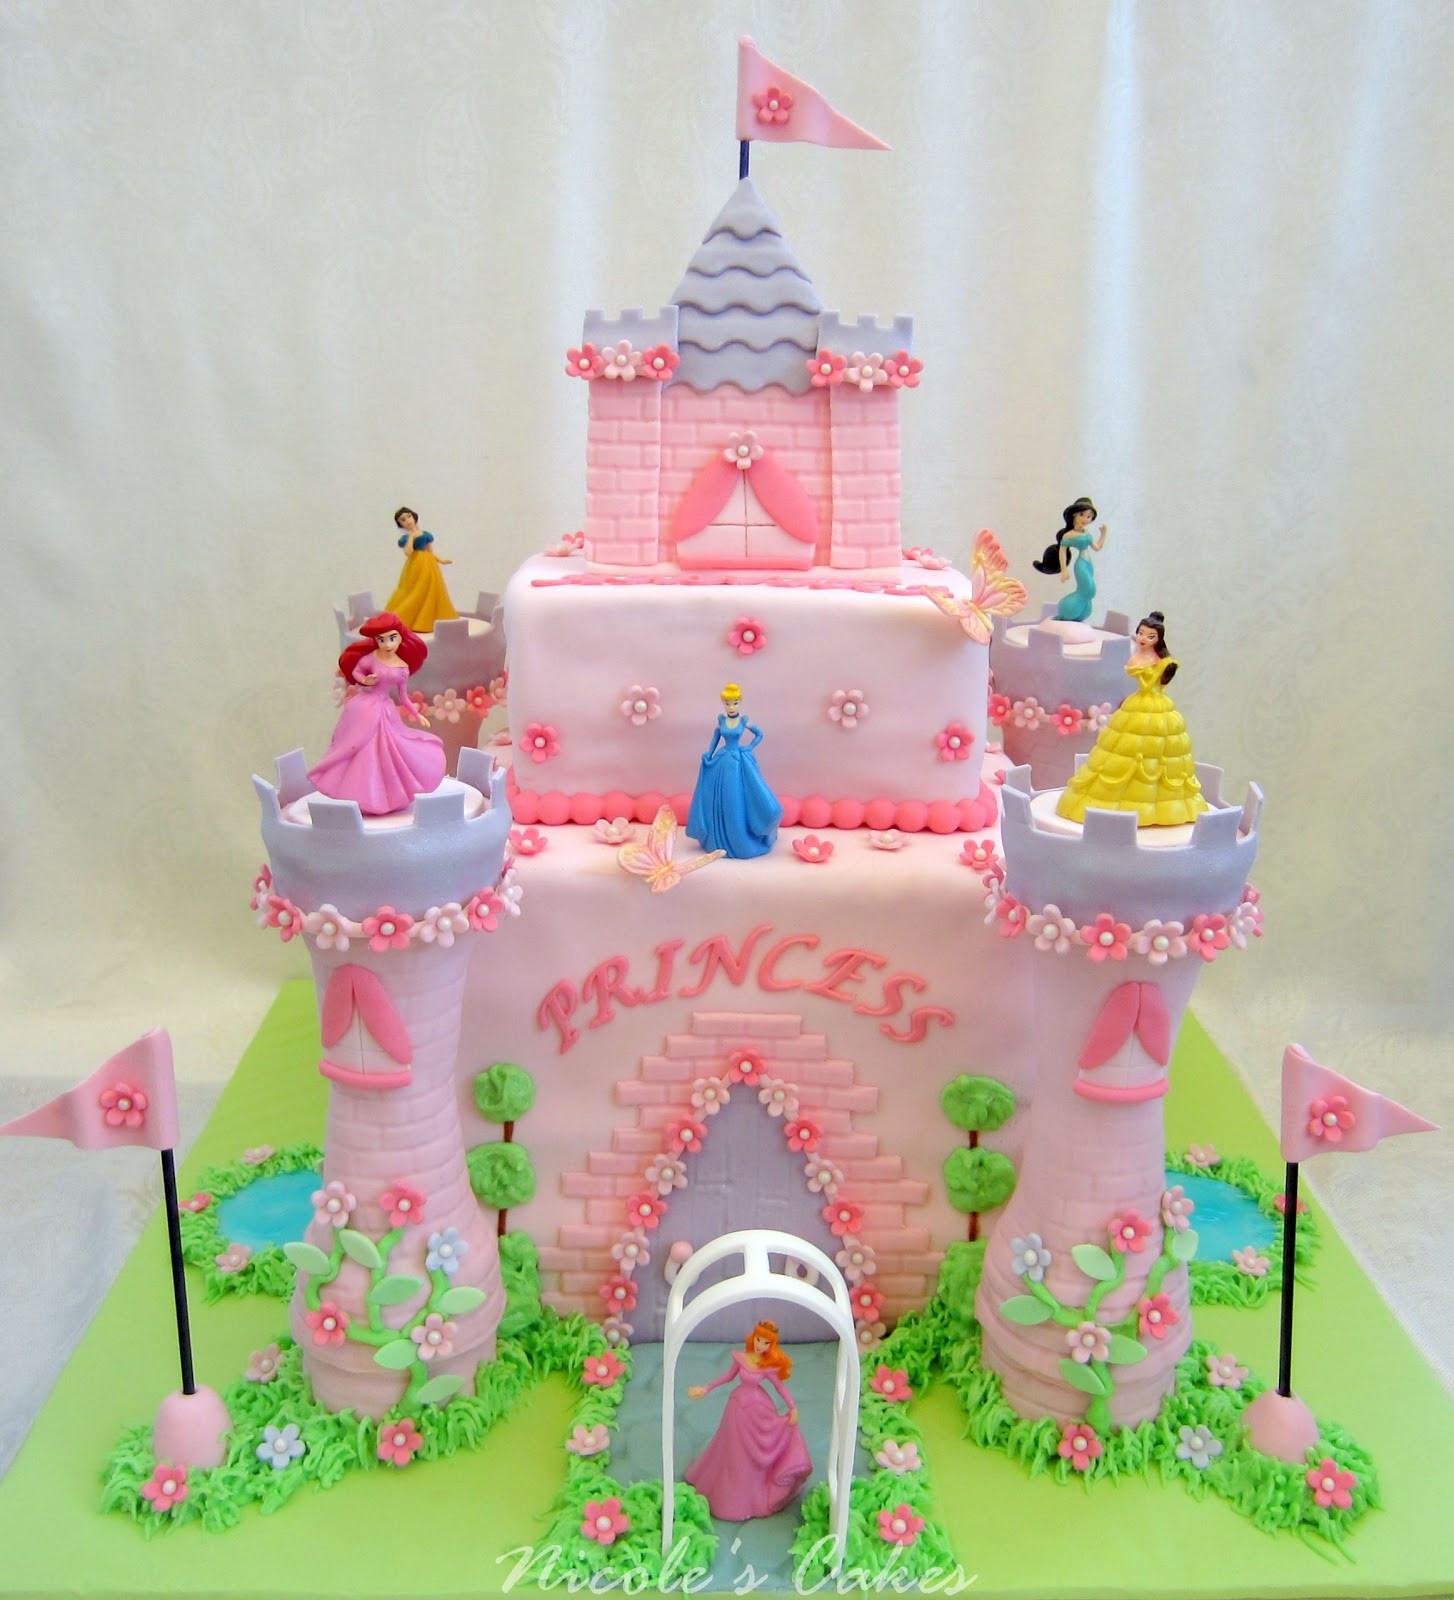 Best ideas about Princess Birthday Cake . Save or Pin Birthday Cakes Princess Castle Cake Now.